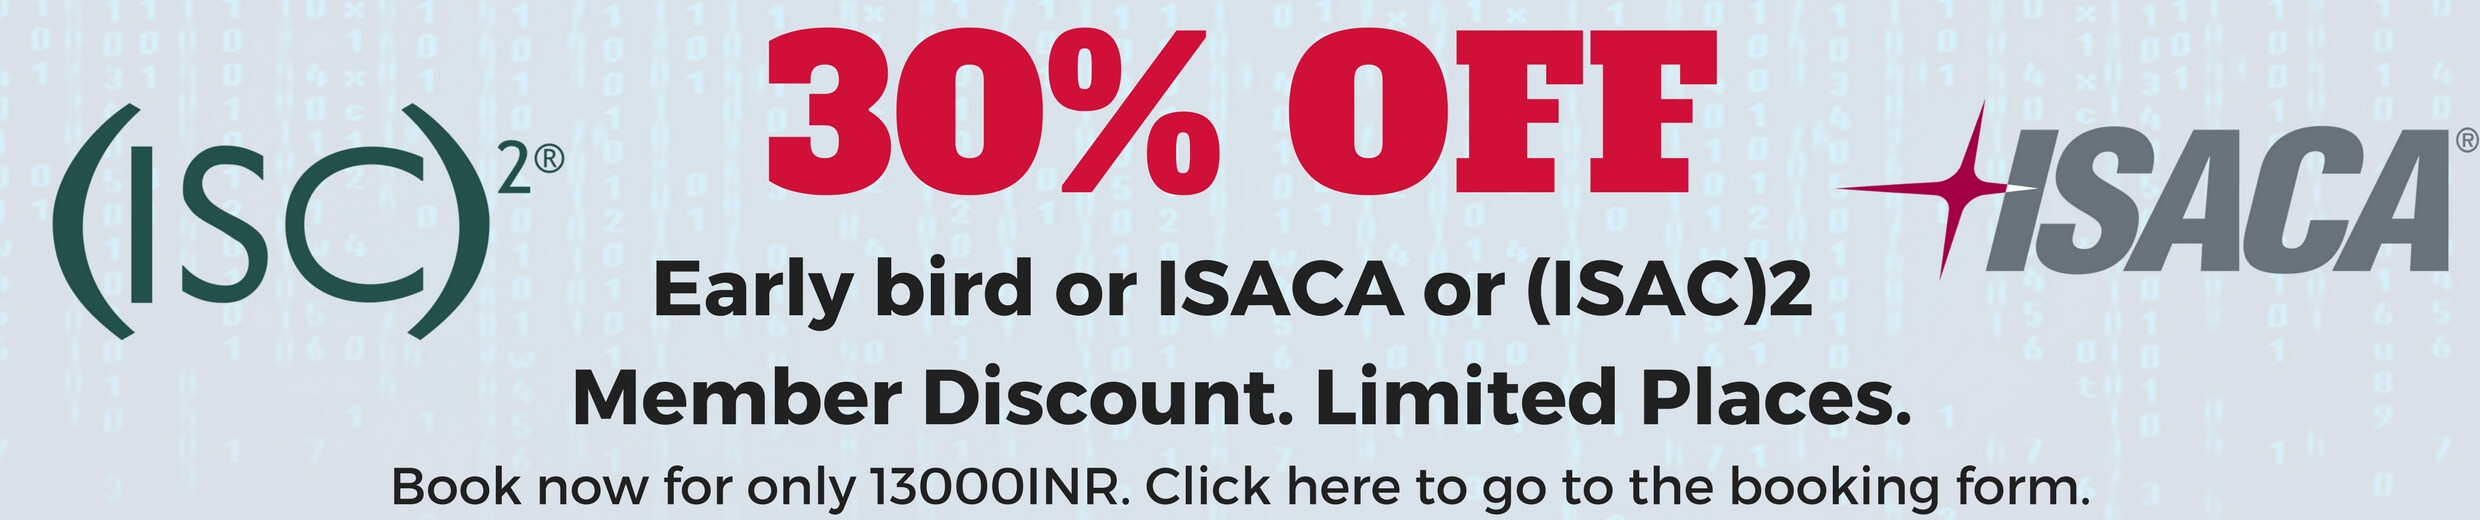 ISACA ISC2 Discount Cyber Training.jpg